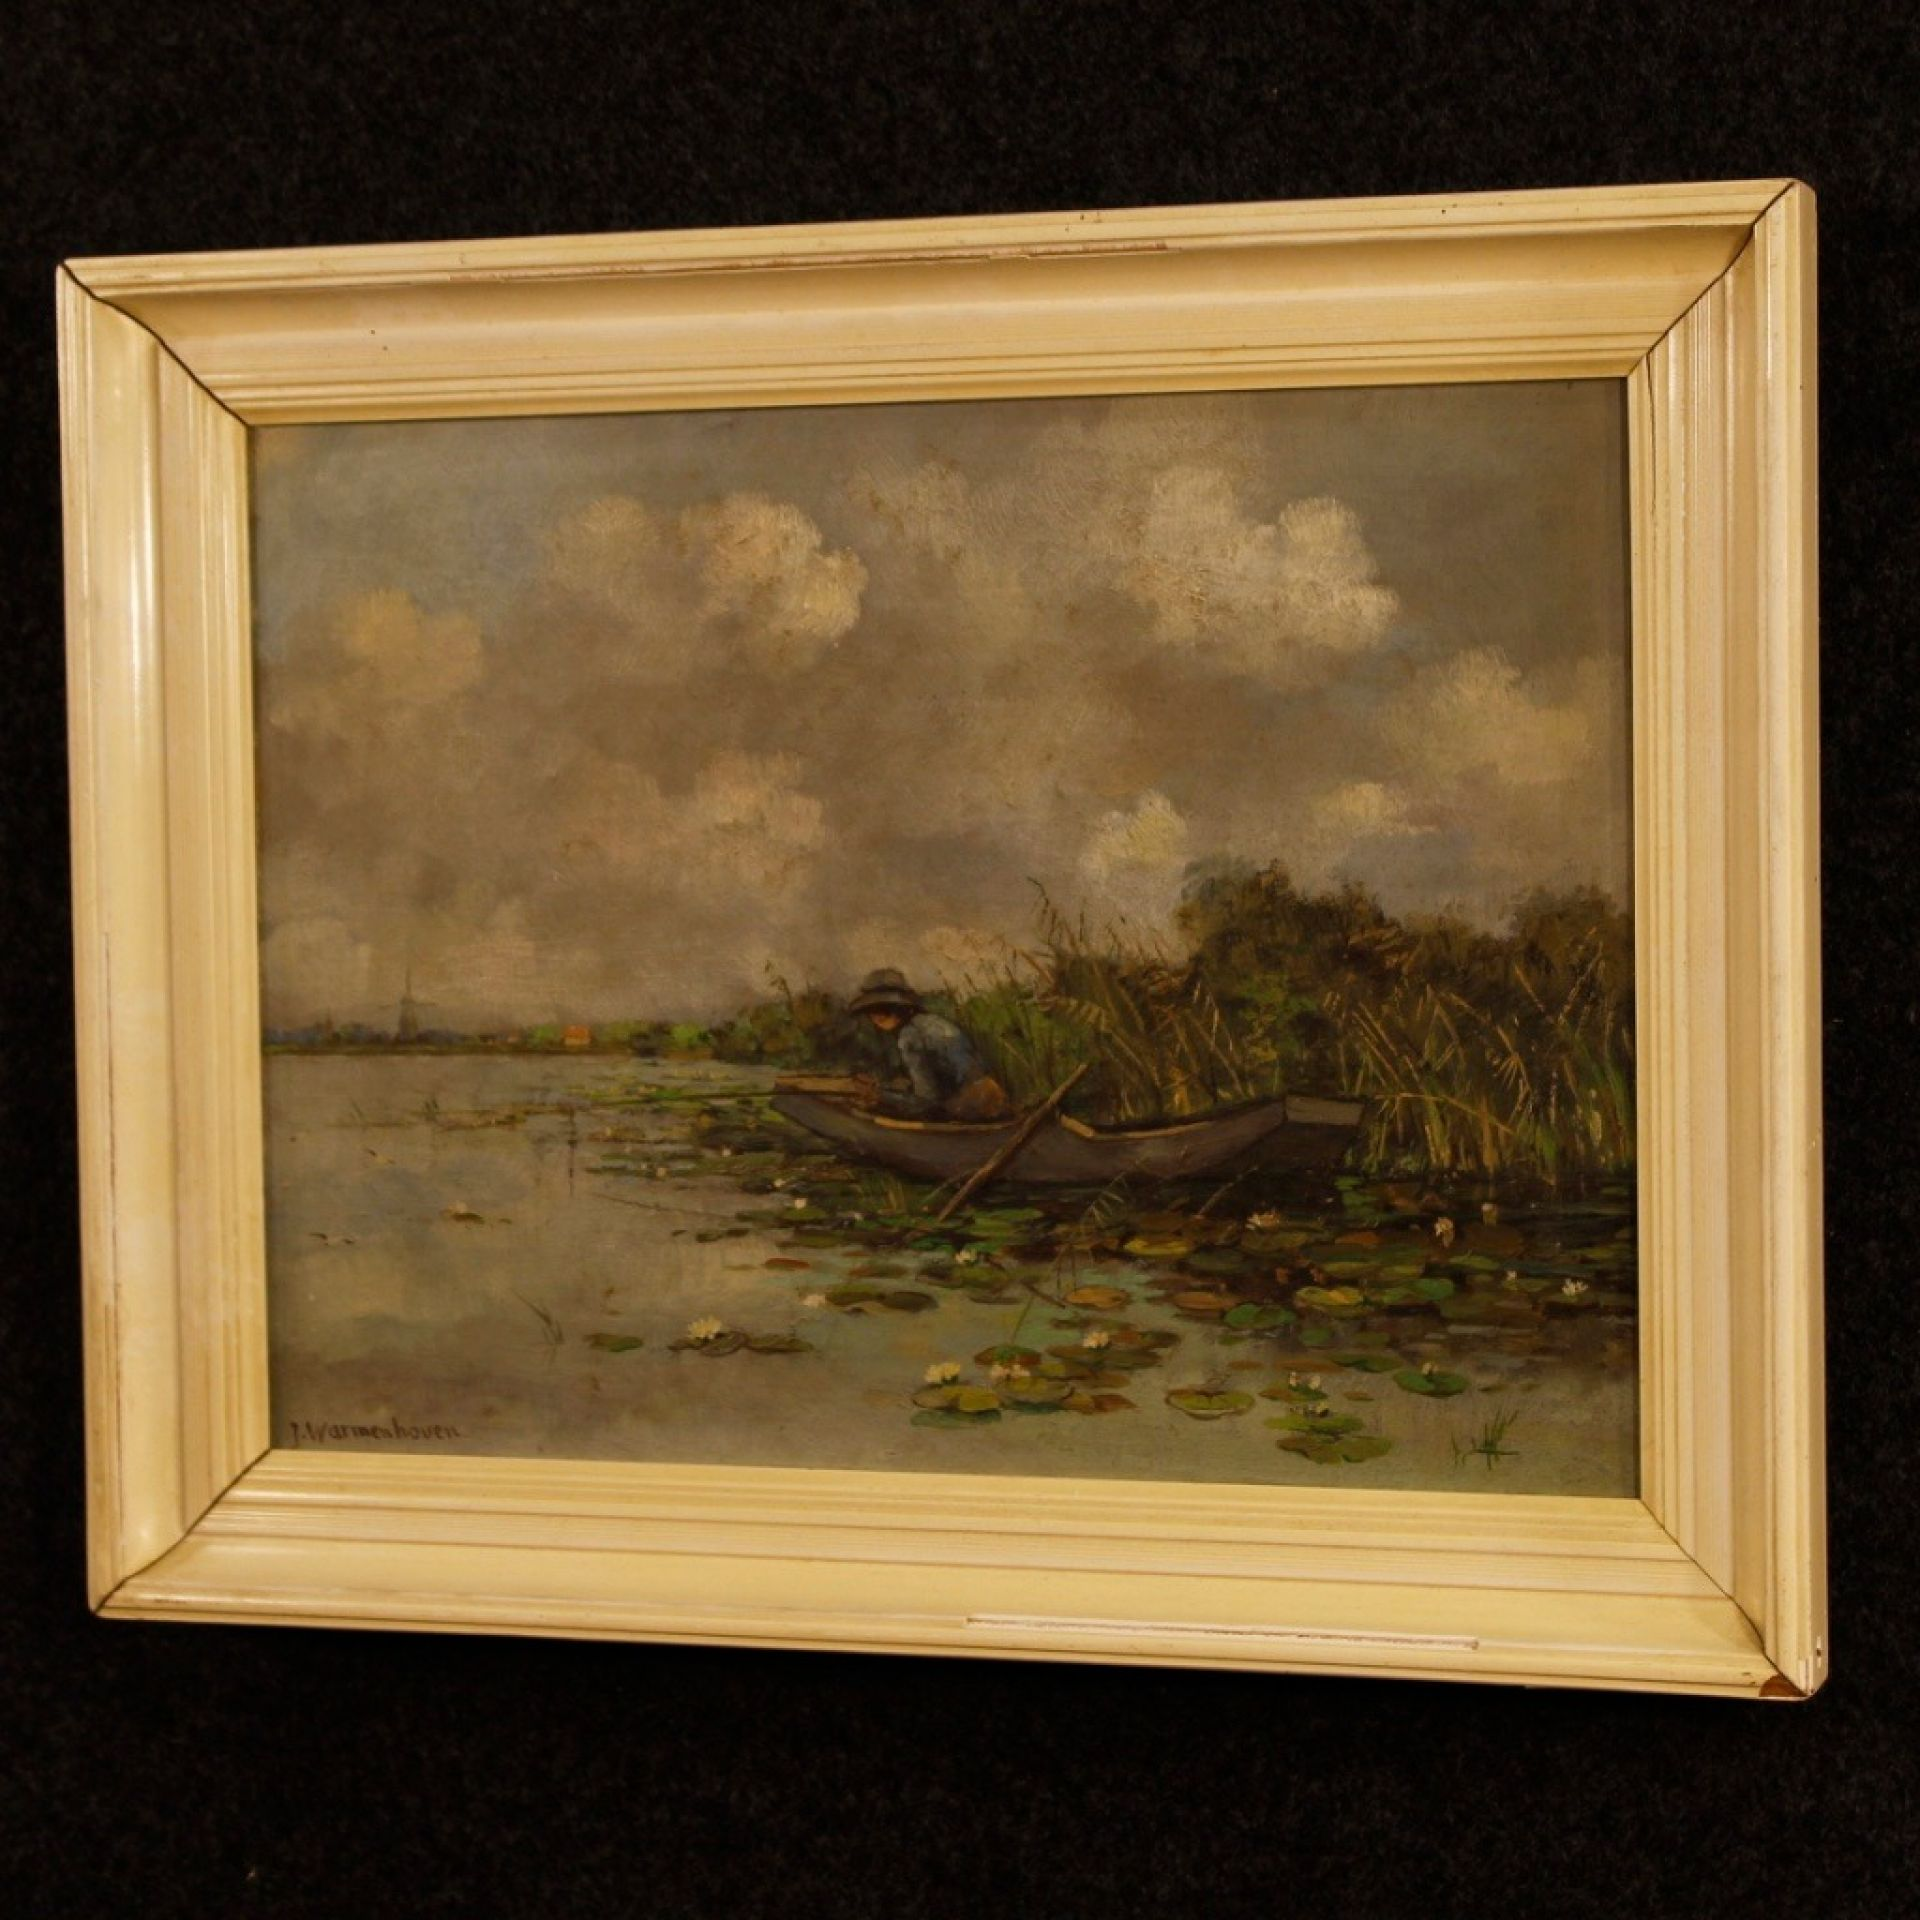 20th Century Oil On Canvas Dutch Signed Painting With Landscape, 1928